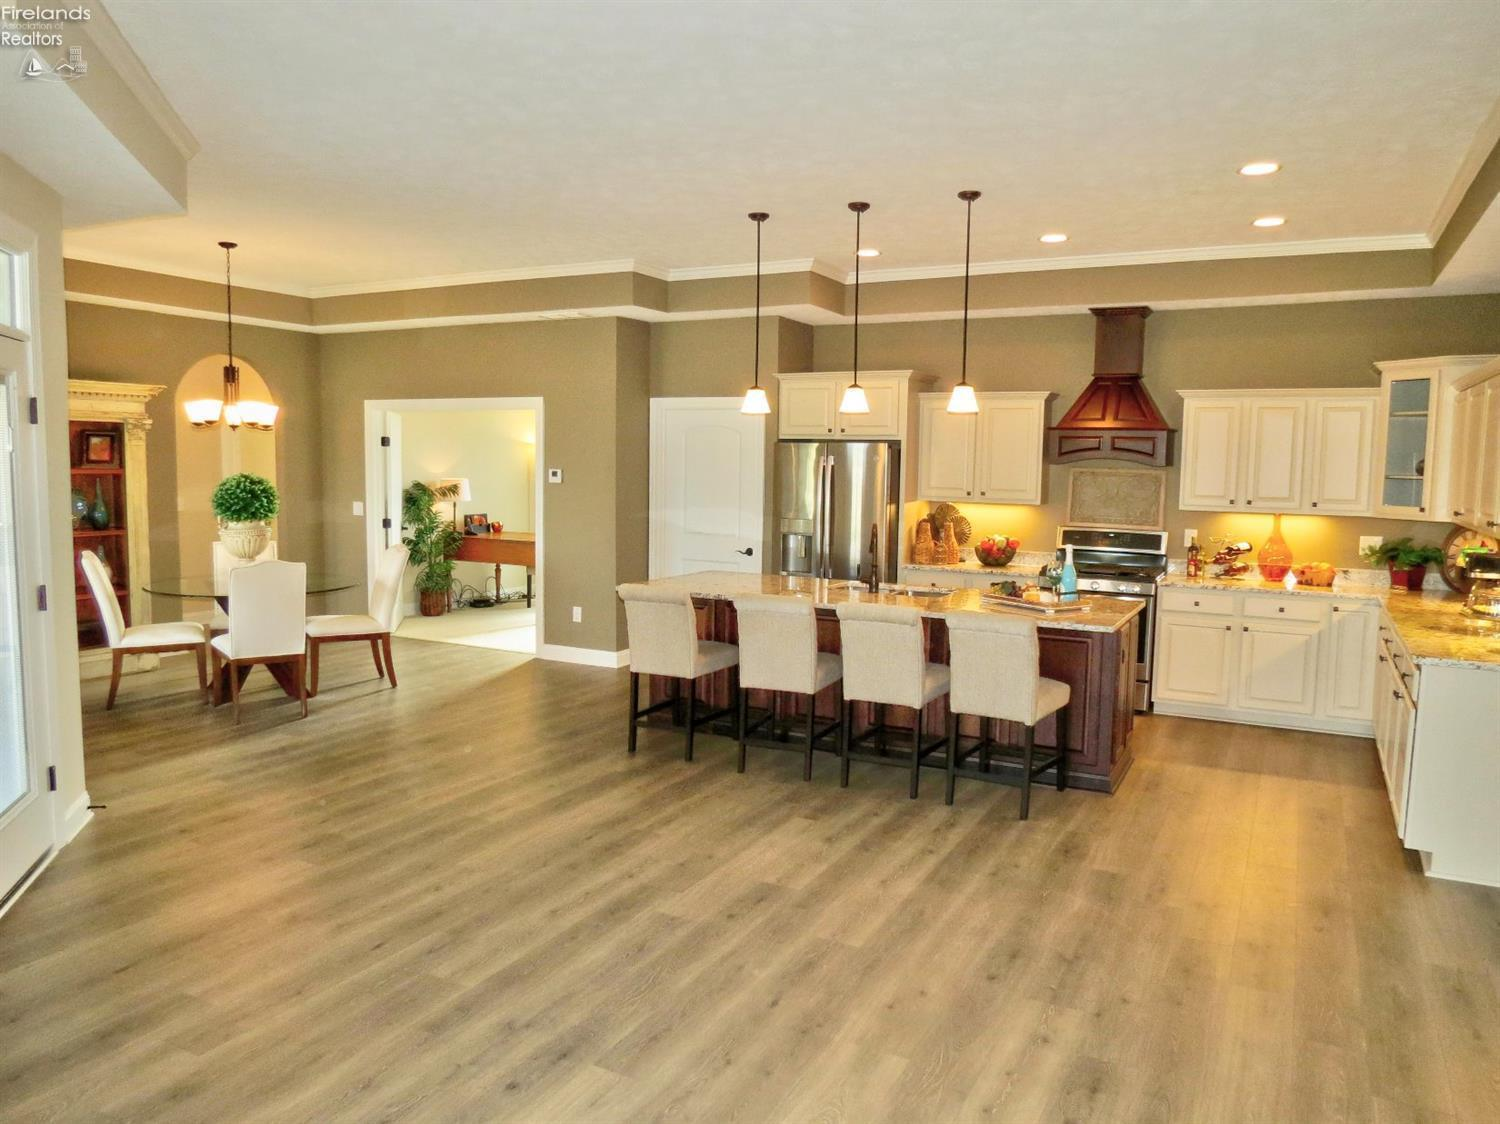 Kitchen featured in The Ashley By Marblewood Homes in Sandusky, OH